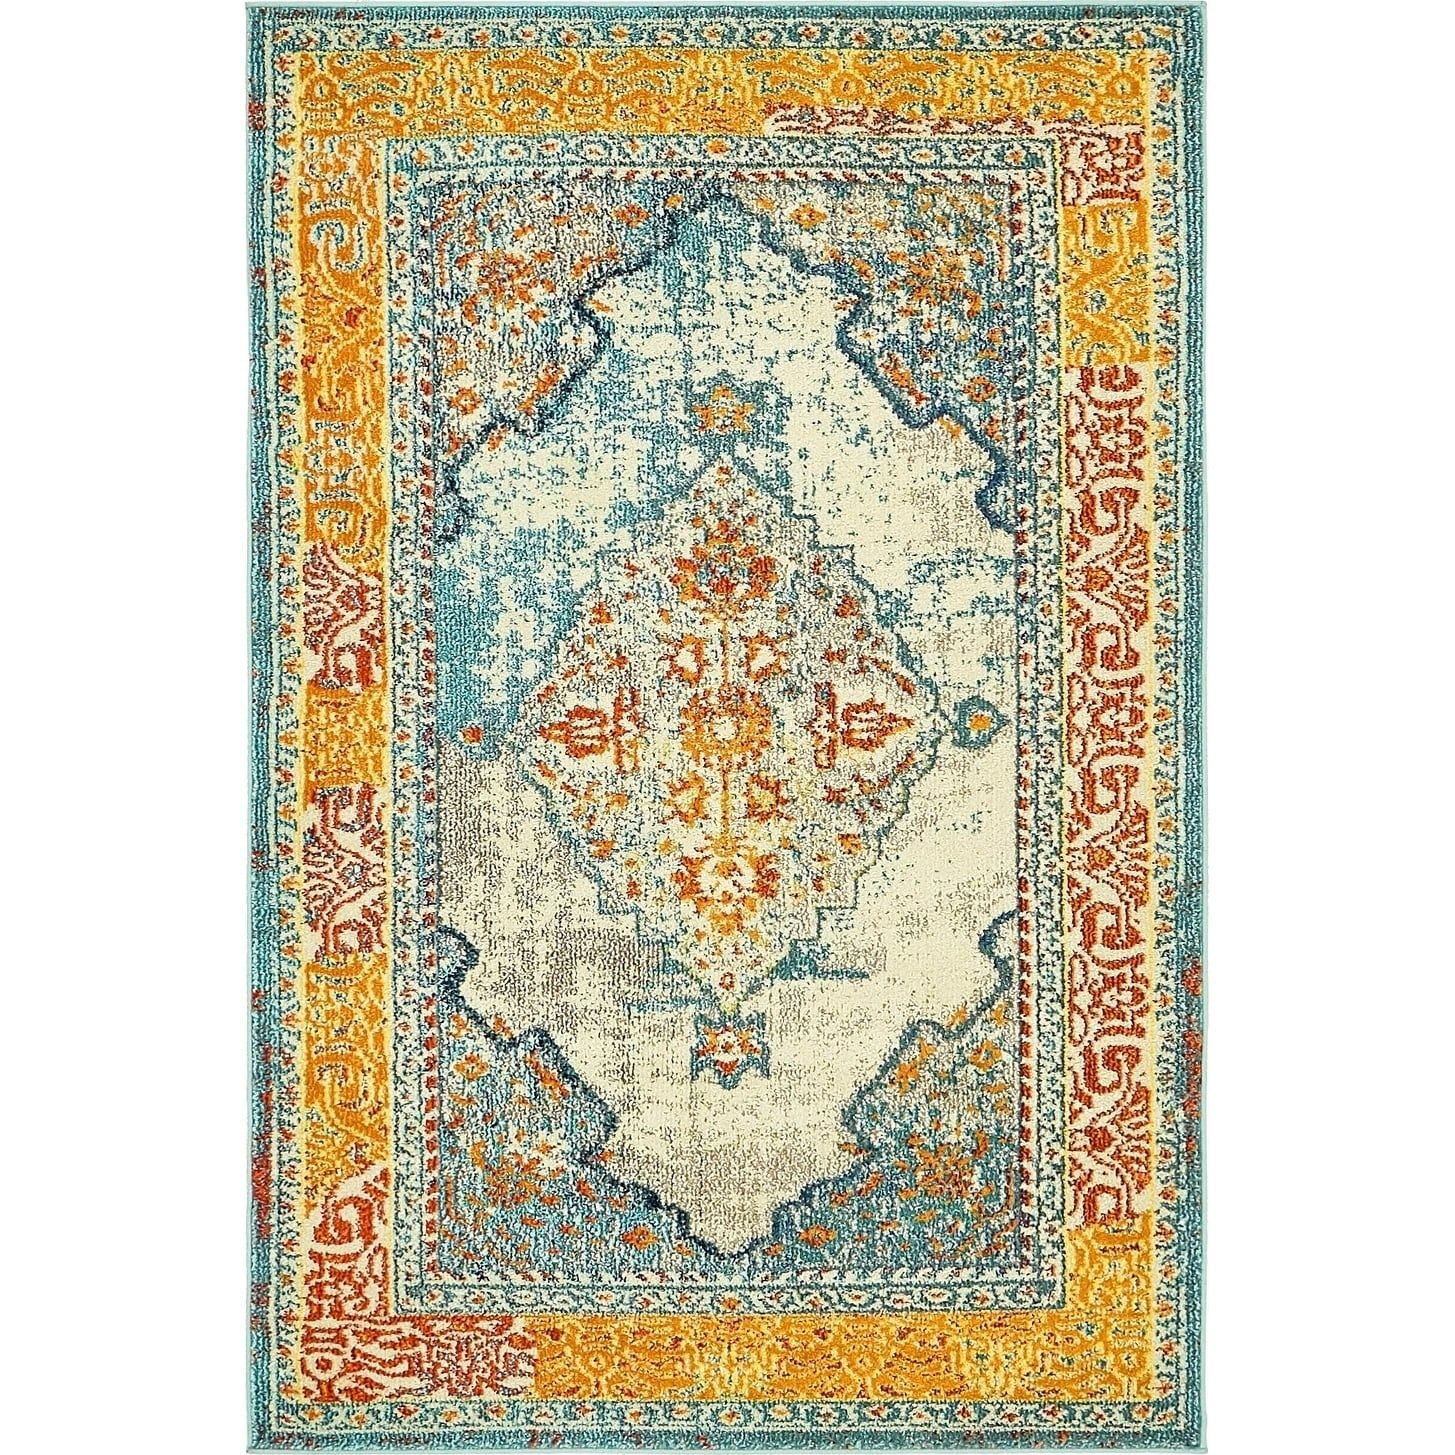 Arte Blue Yellow Medallion Area Rug 4 X 6 Ping The Best Deals On 3x5 4x6 Rugs